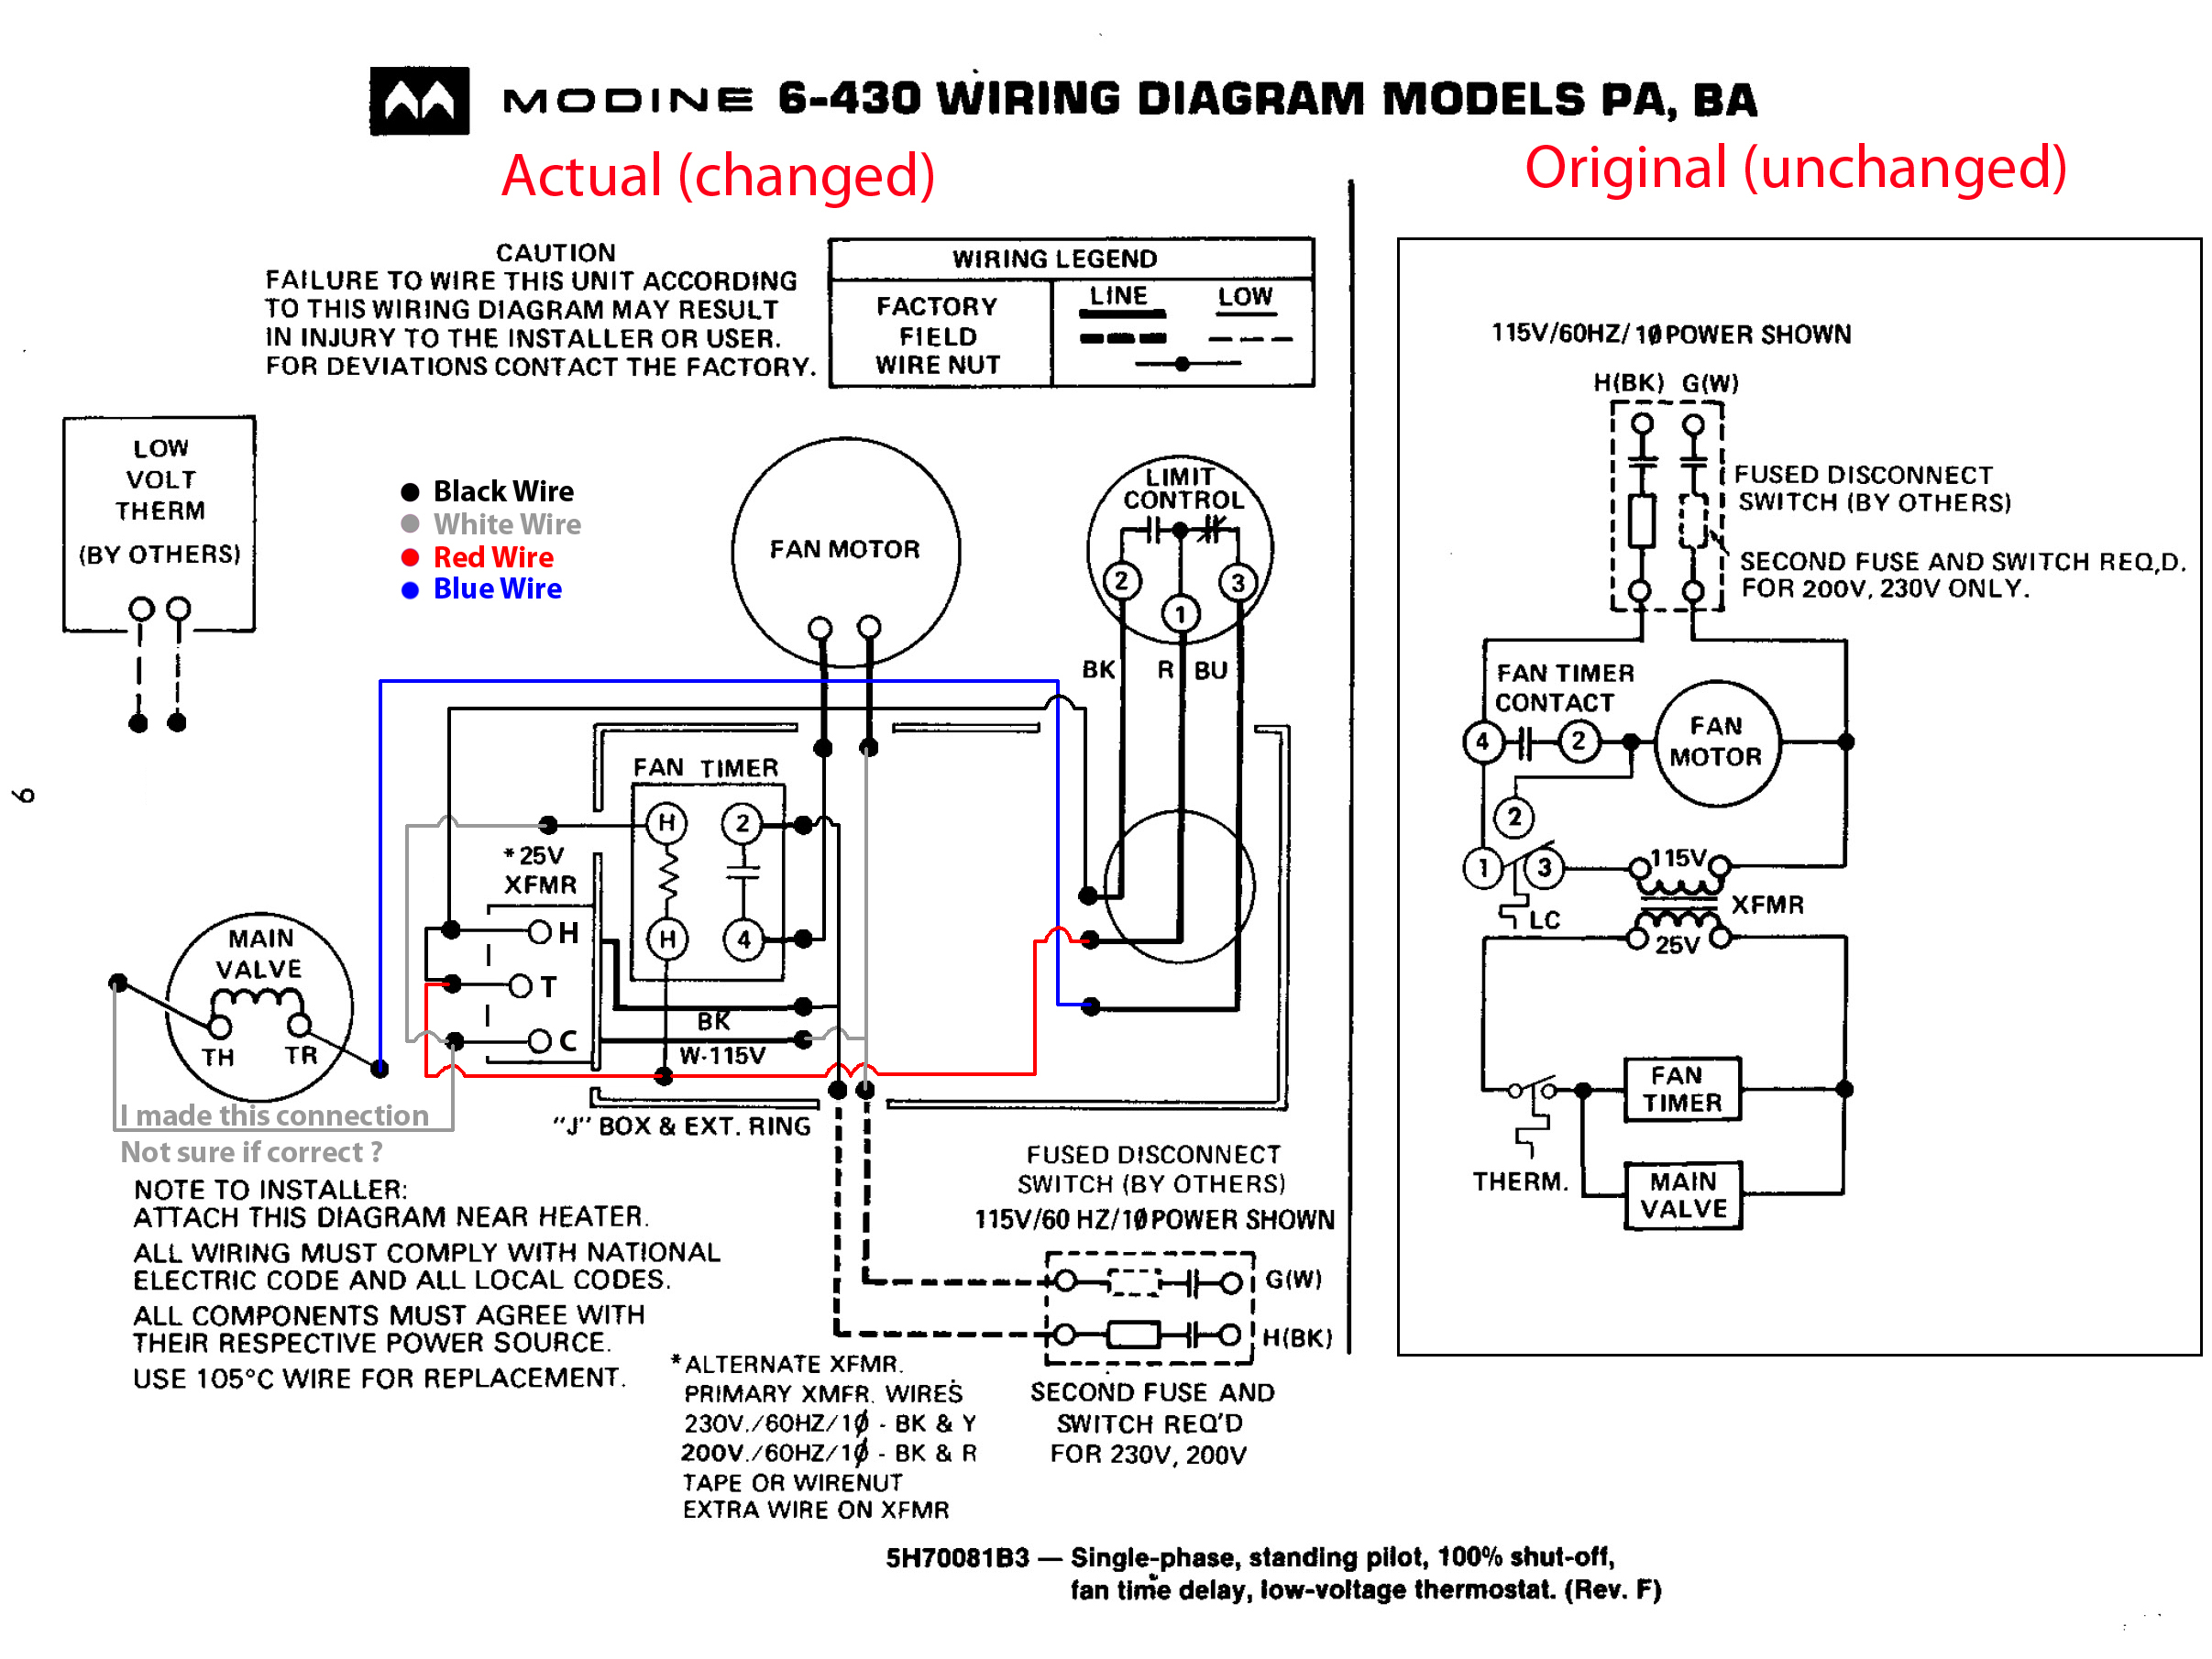 gas heater wiring diagram completed wiring diagrams 2000 jeep wrangler heater wiring diagram modine heater wiring wiring diagram todays reznor gas heater wiring diagram gas heater wiring diagram